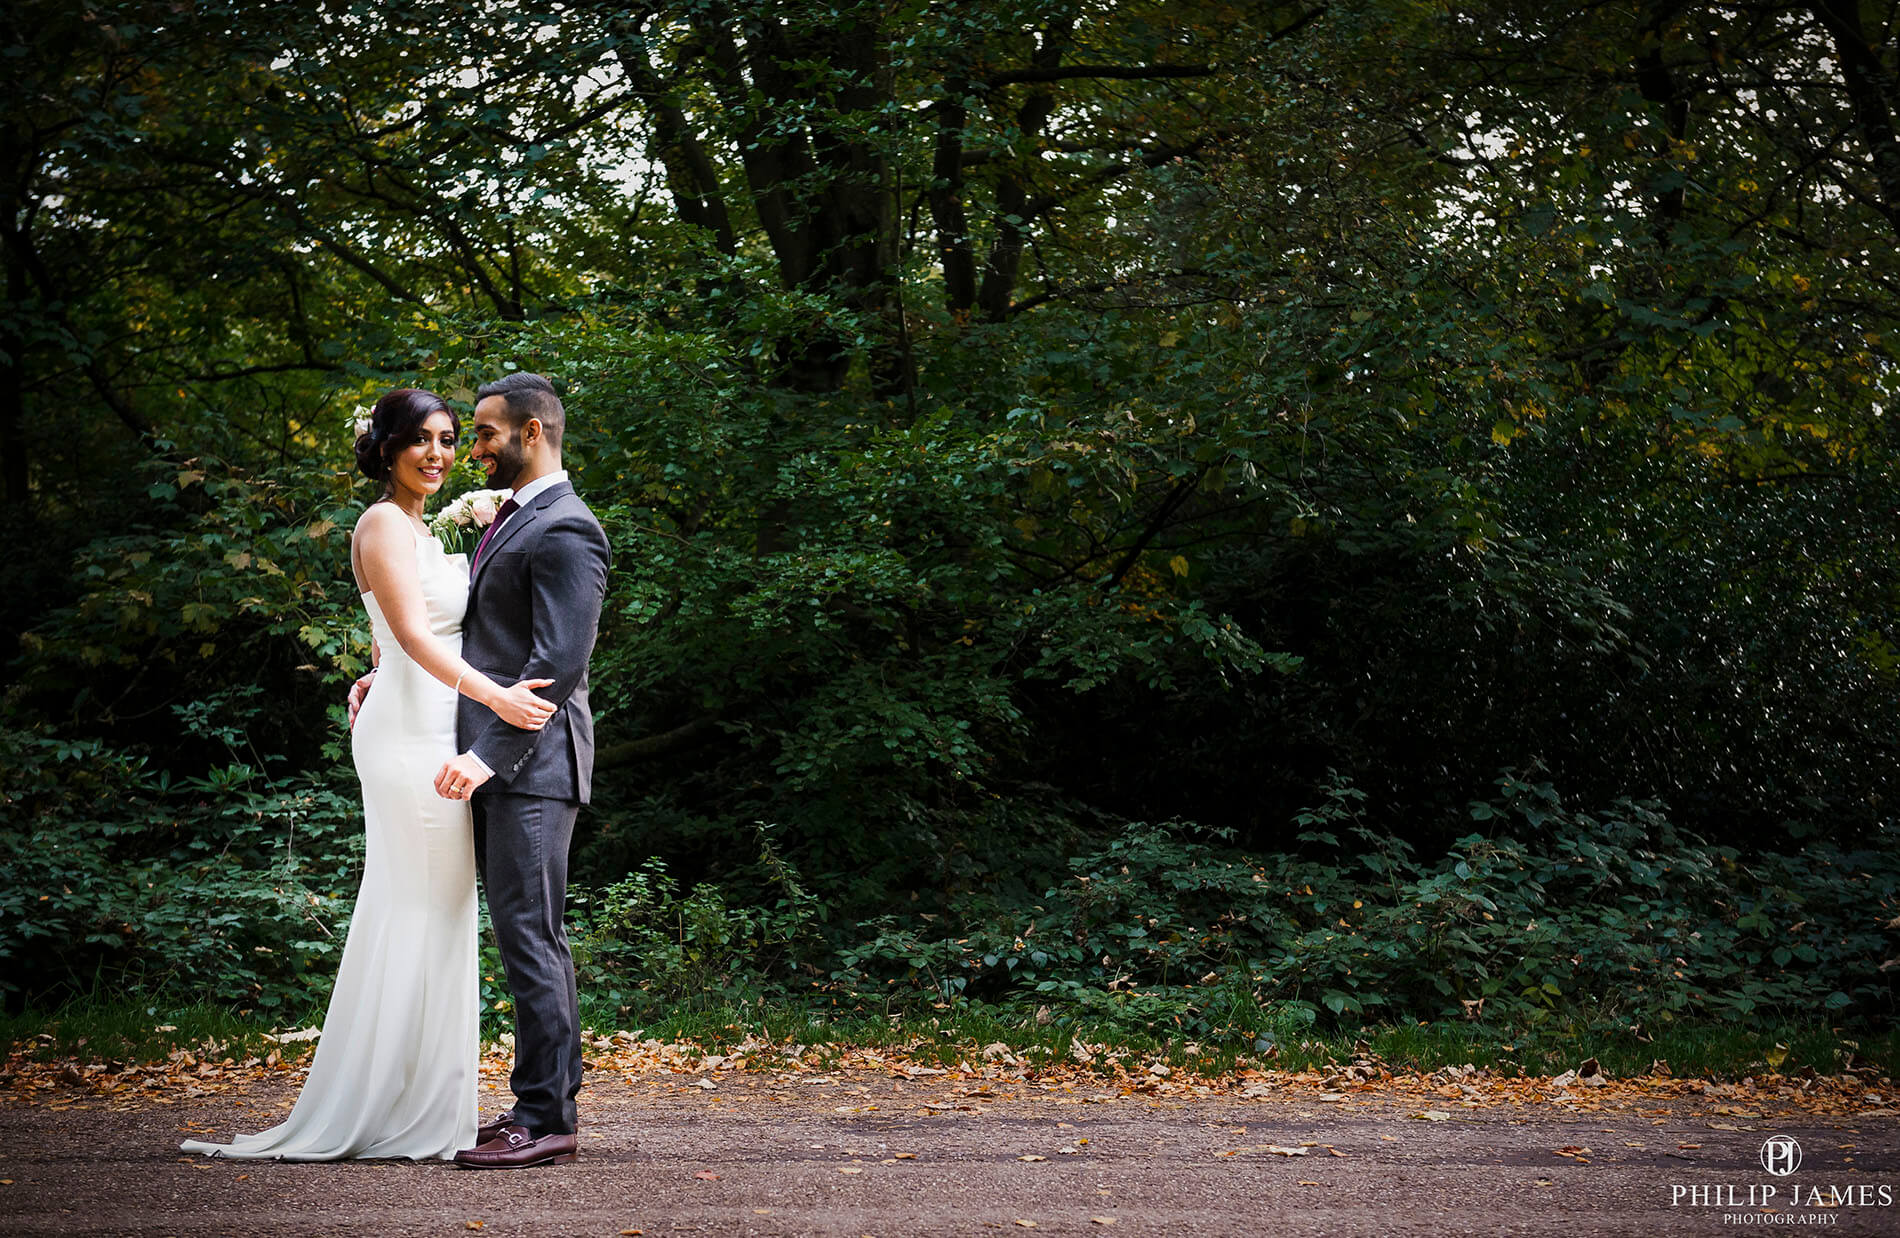 wedding photographer Sutton Coldfield Park | Philip James Photography